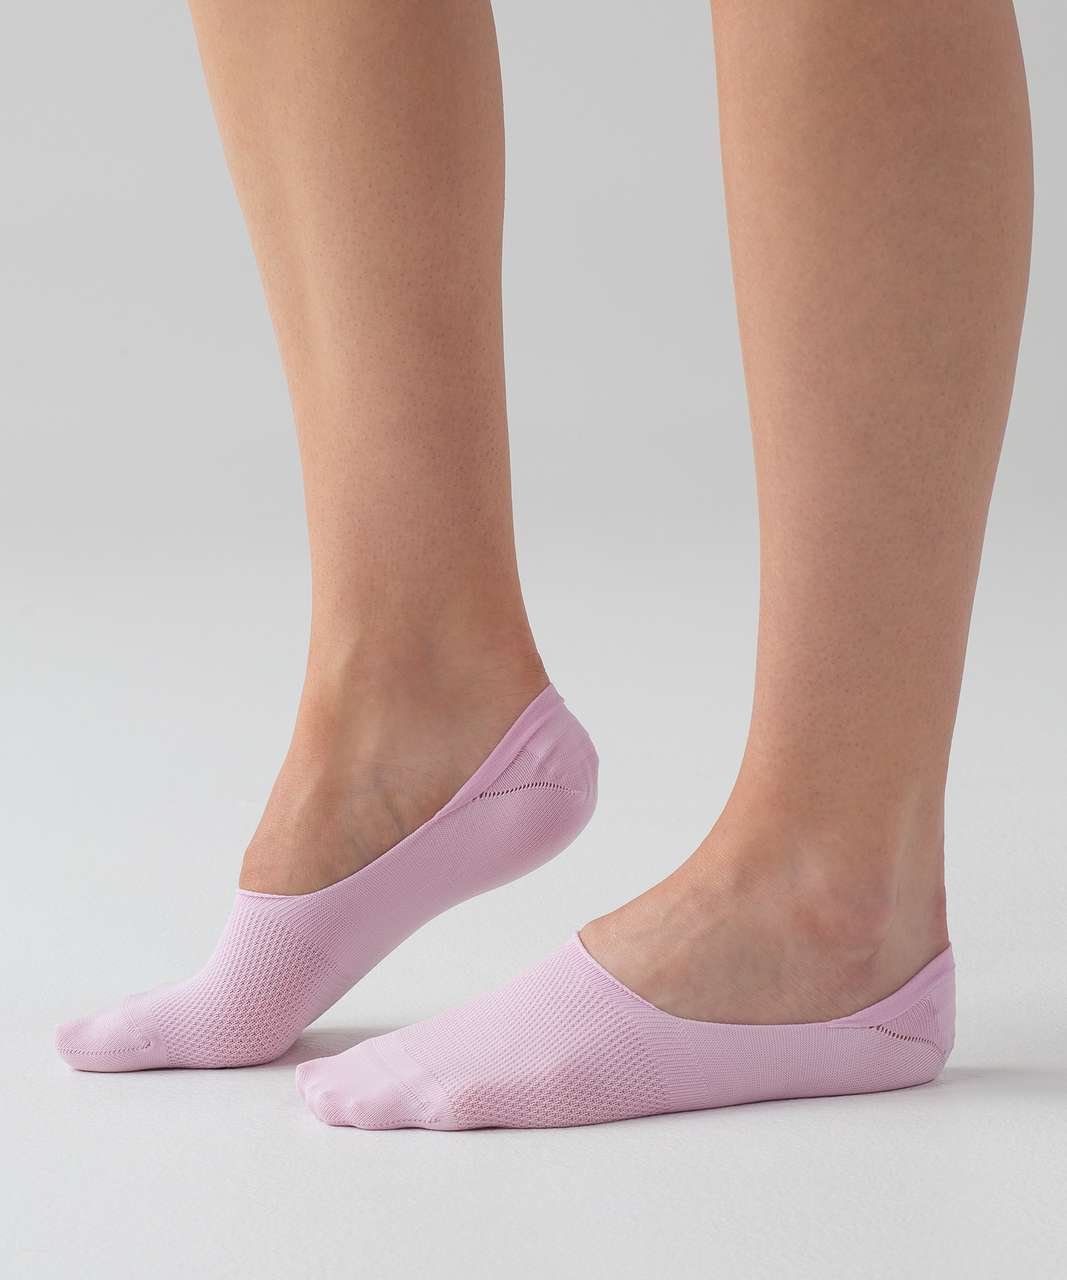 Lululemon Secret Sock - Cherry Blossom Pink